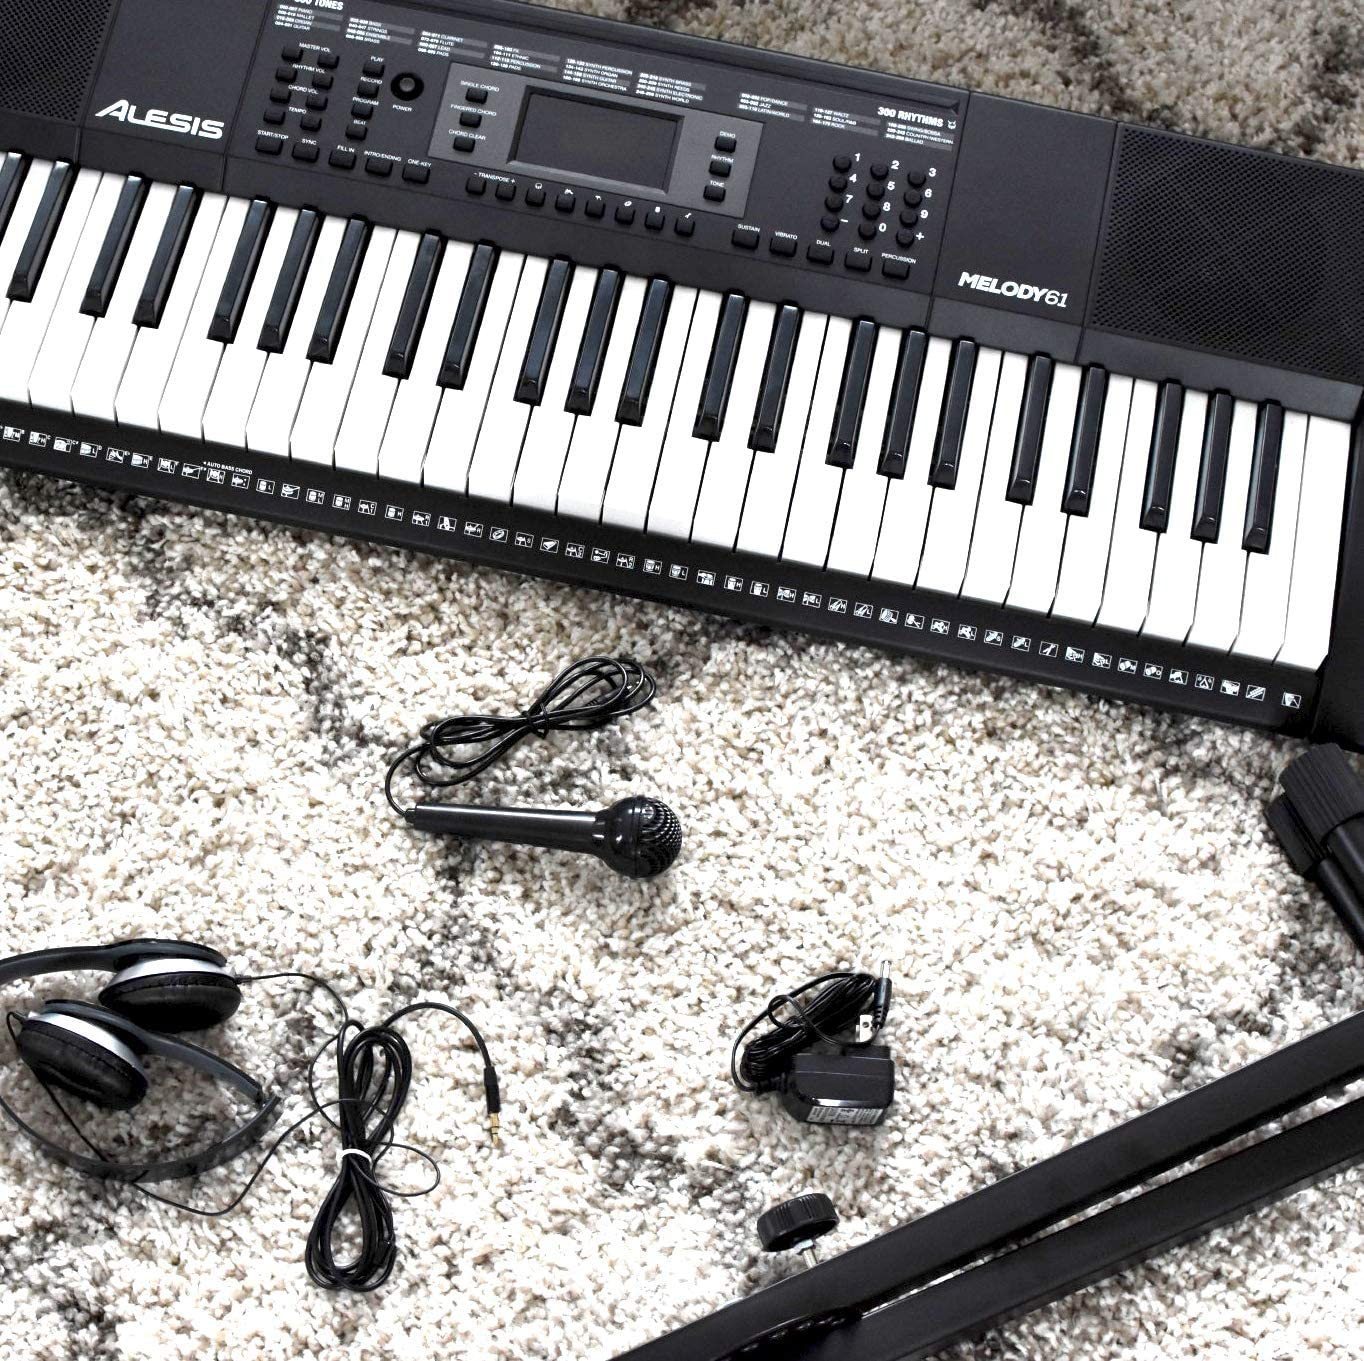 Beginner Keyboard Alesis Melody 61 MKII | 61-Key Portable Keyboard with Built-In Speakers, Headphones, Microphone, Piano Stand, Music Rest and Stool.